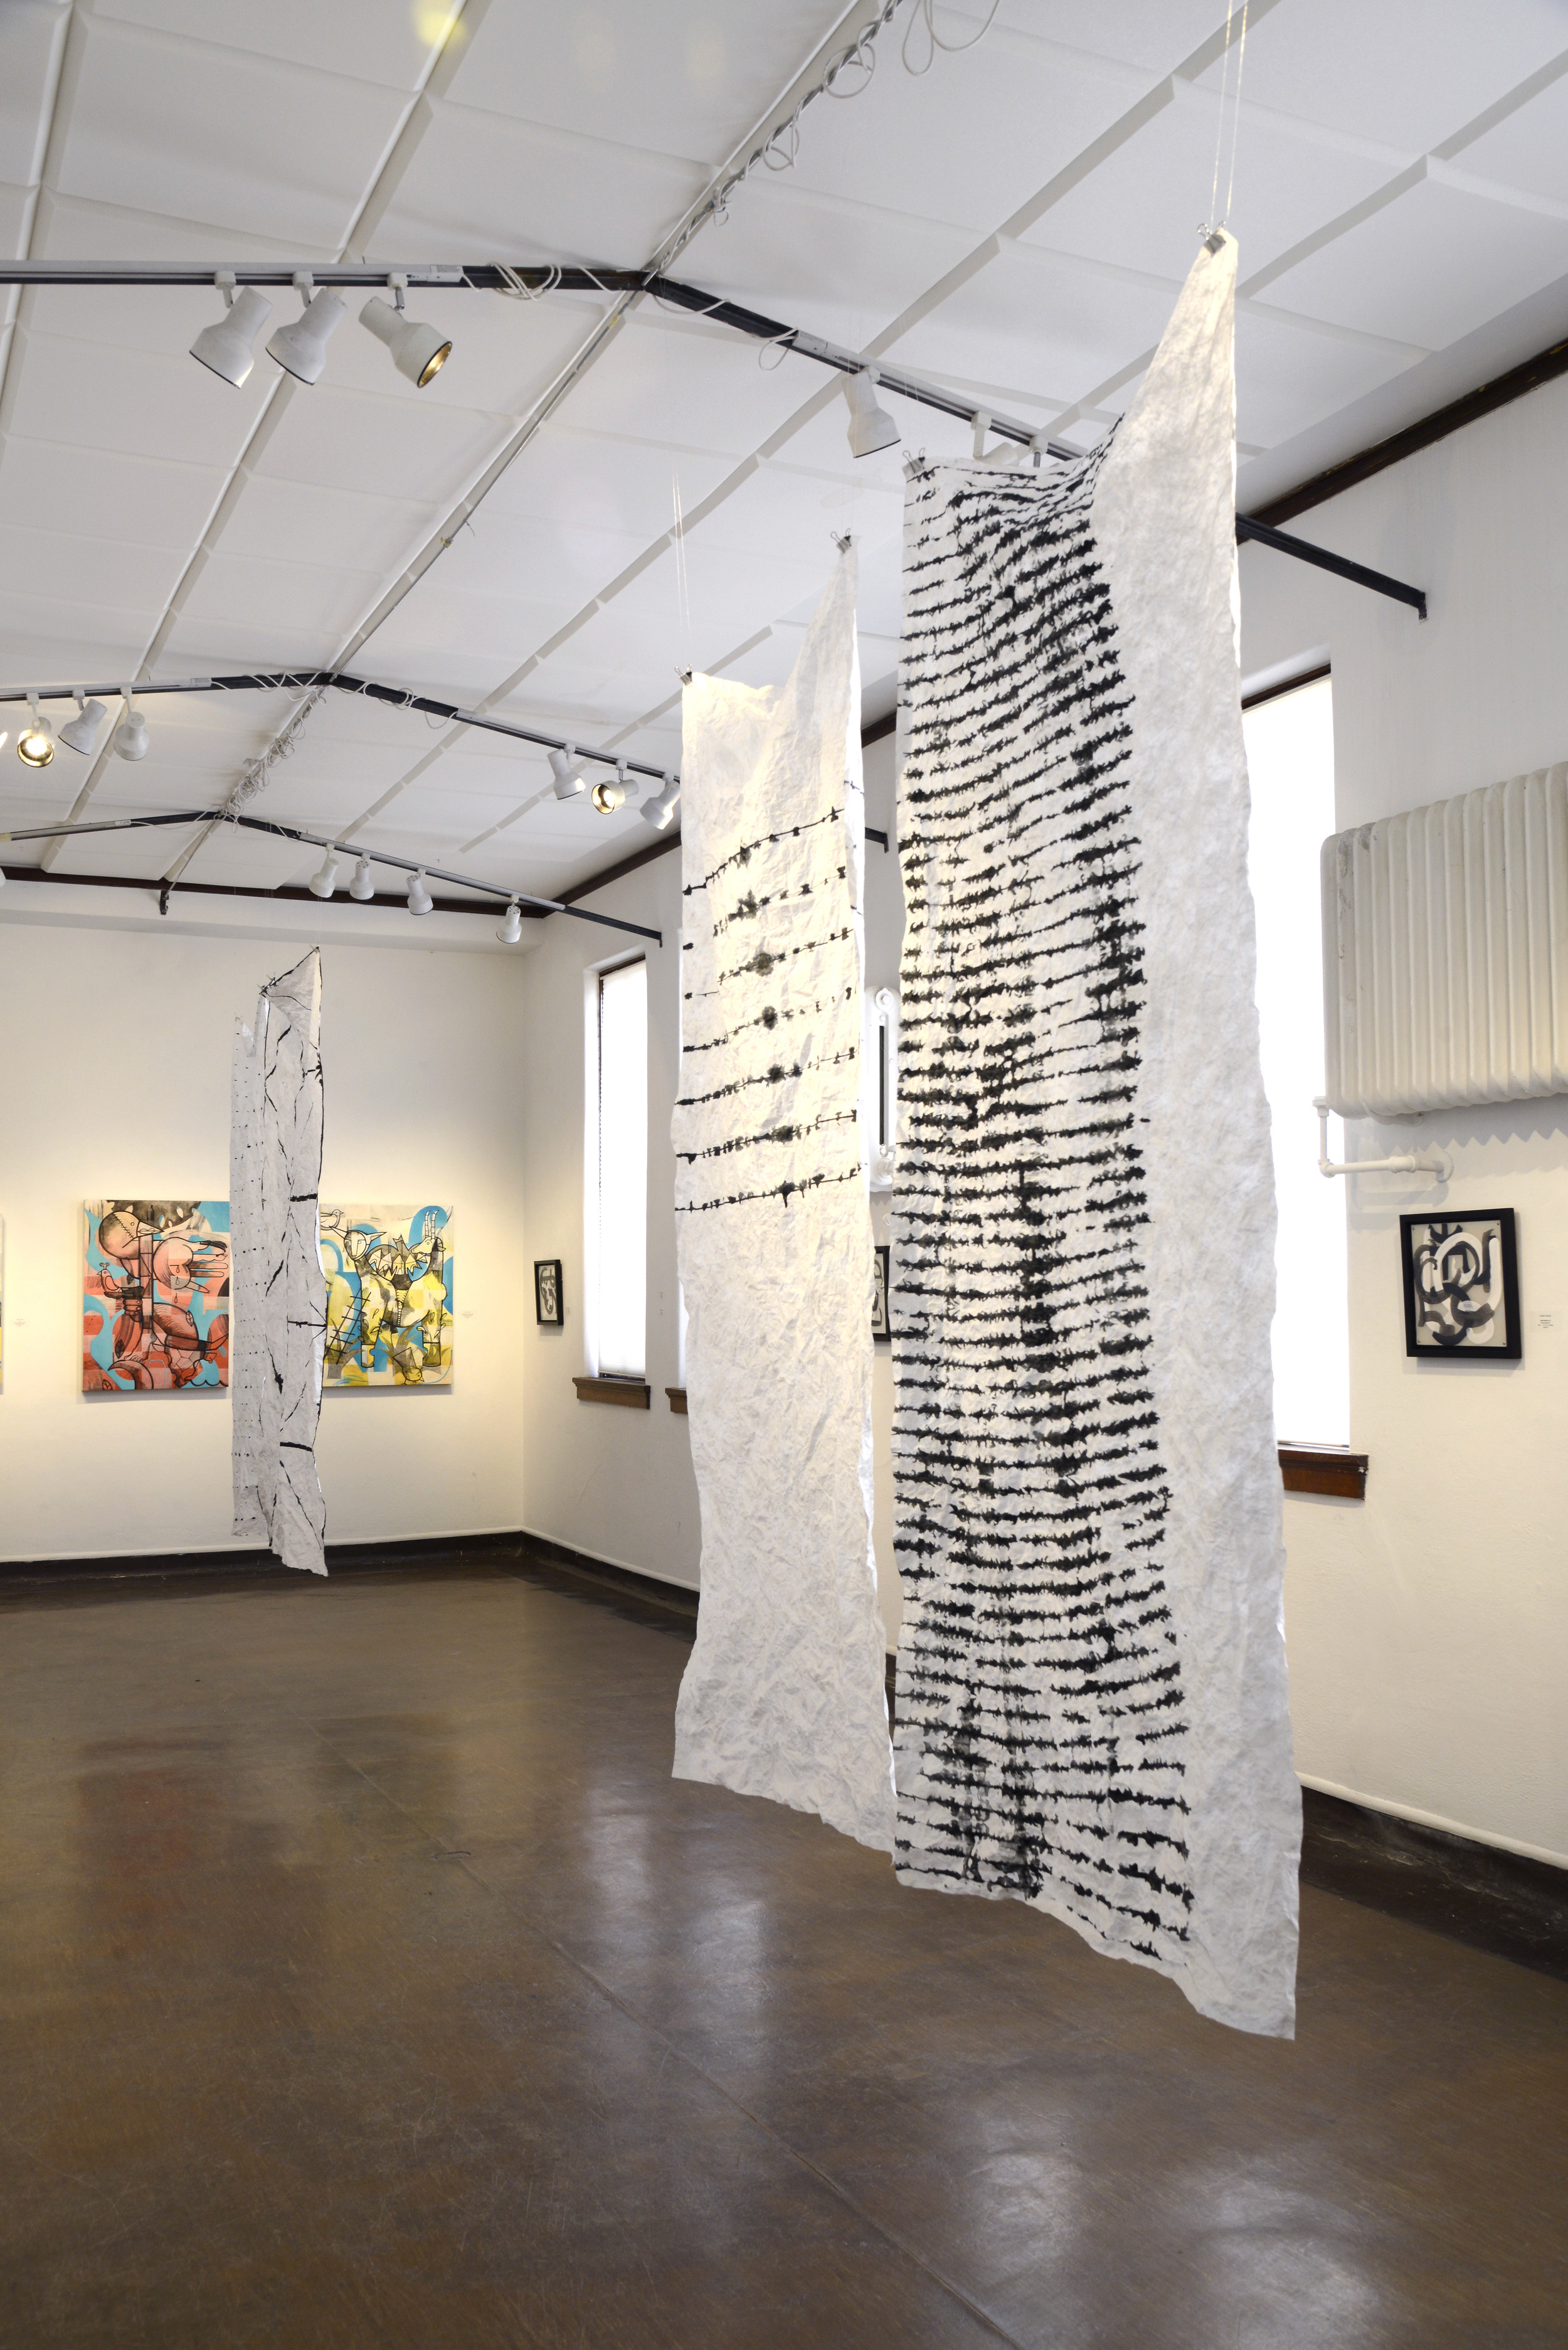 """Installed in """"Finding Reason"""", April 2014 The Harwood Art Center, Albuquerque, New Mexico"""